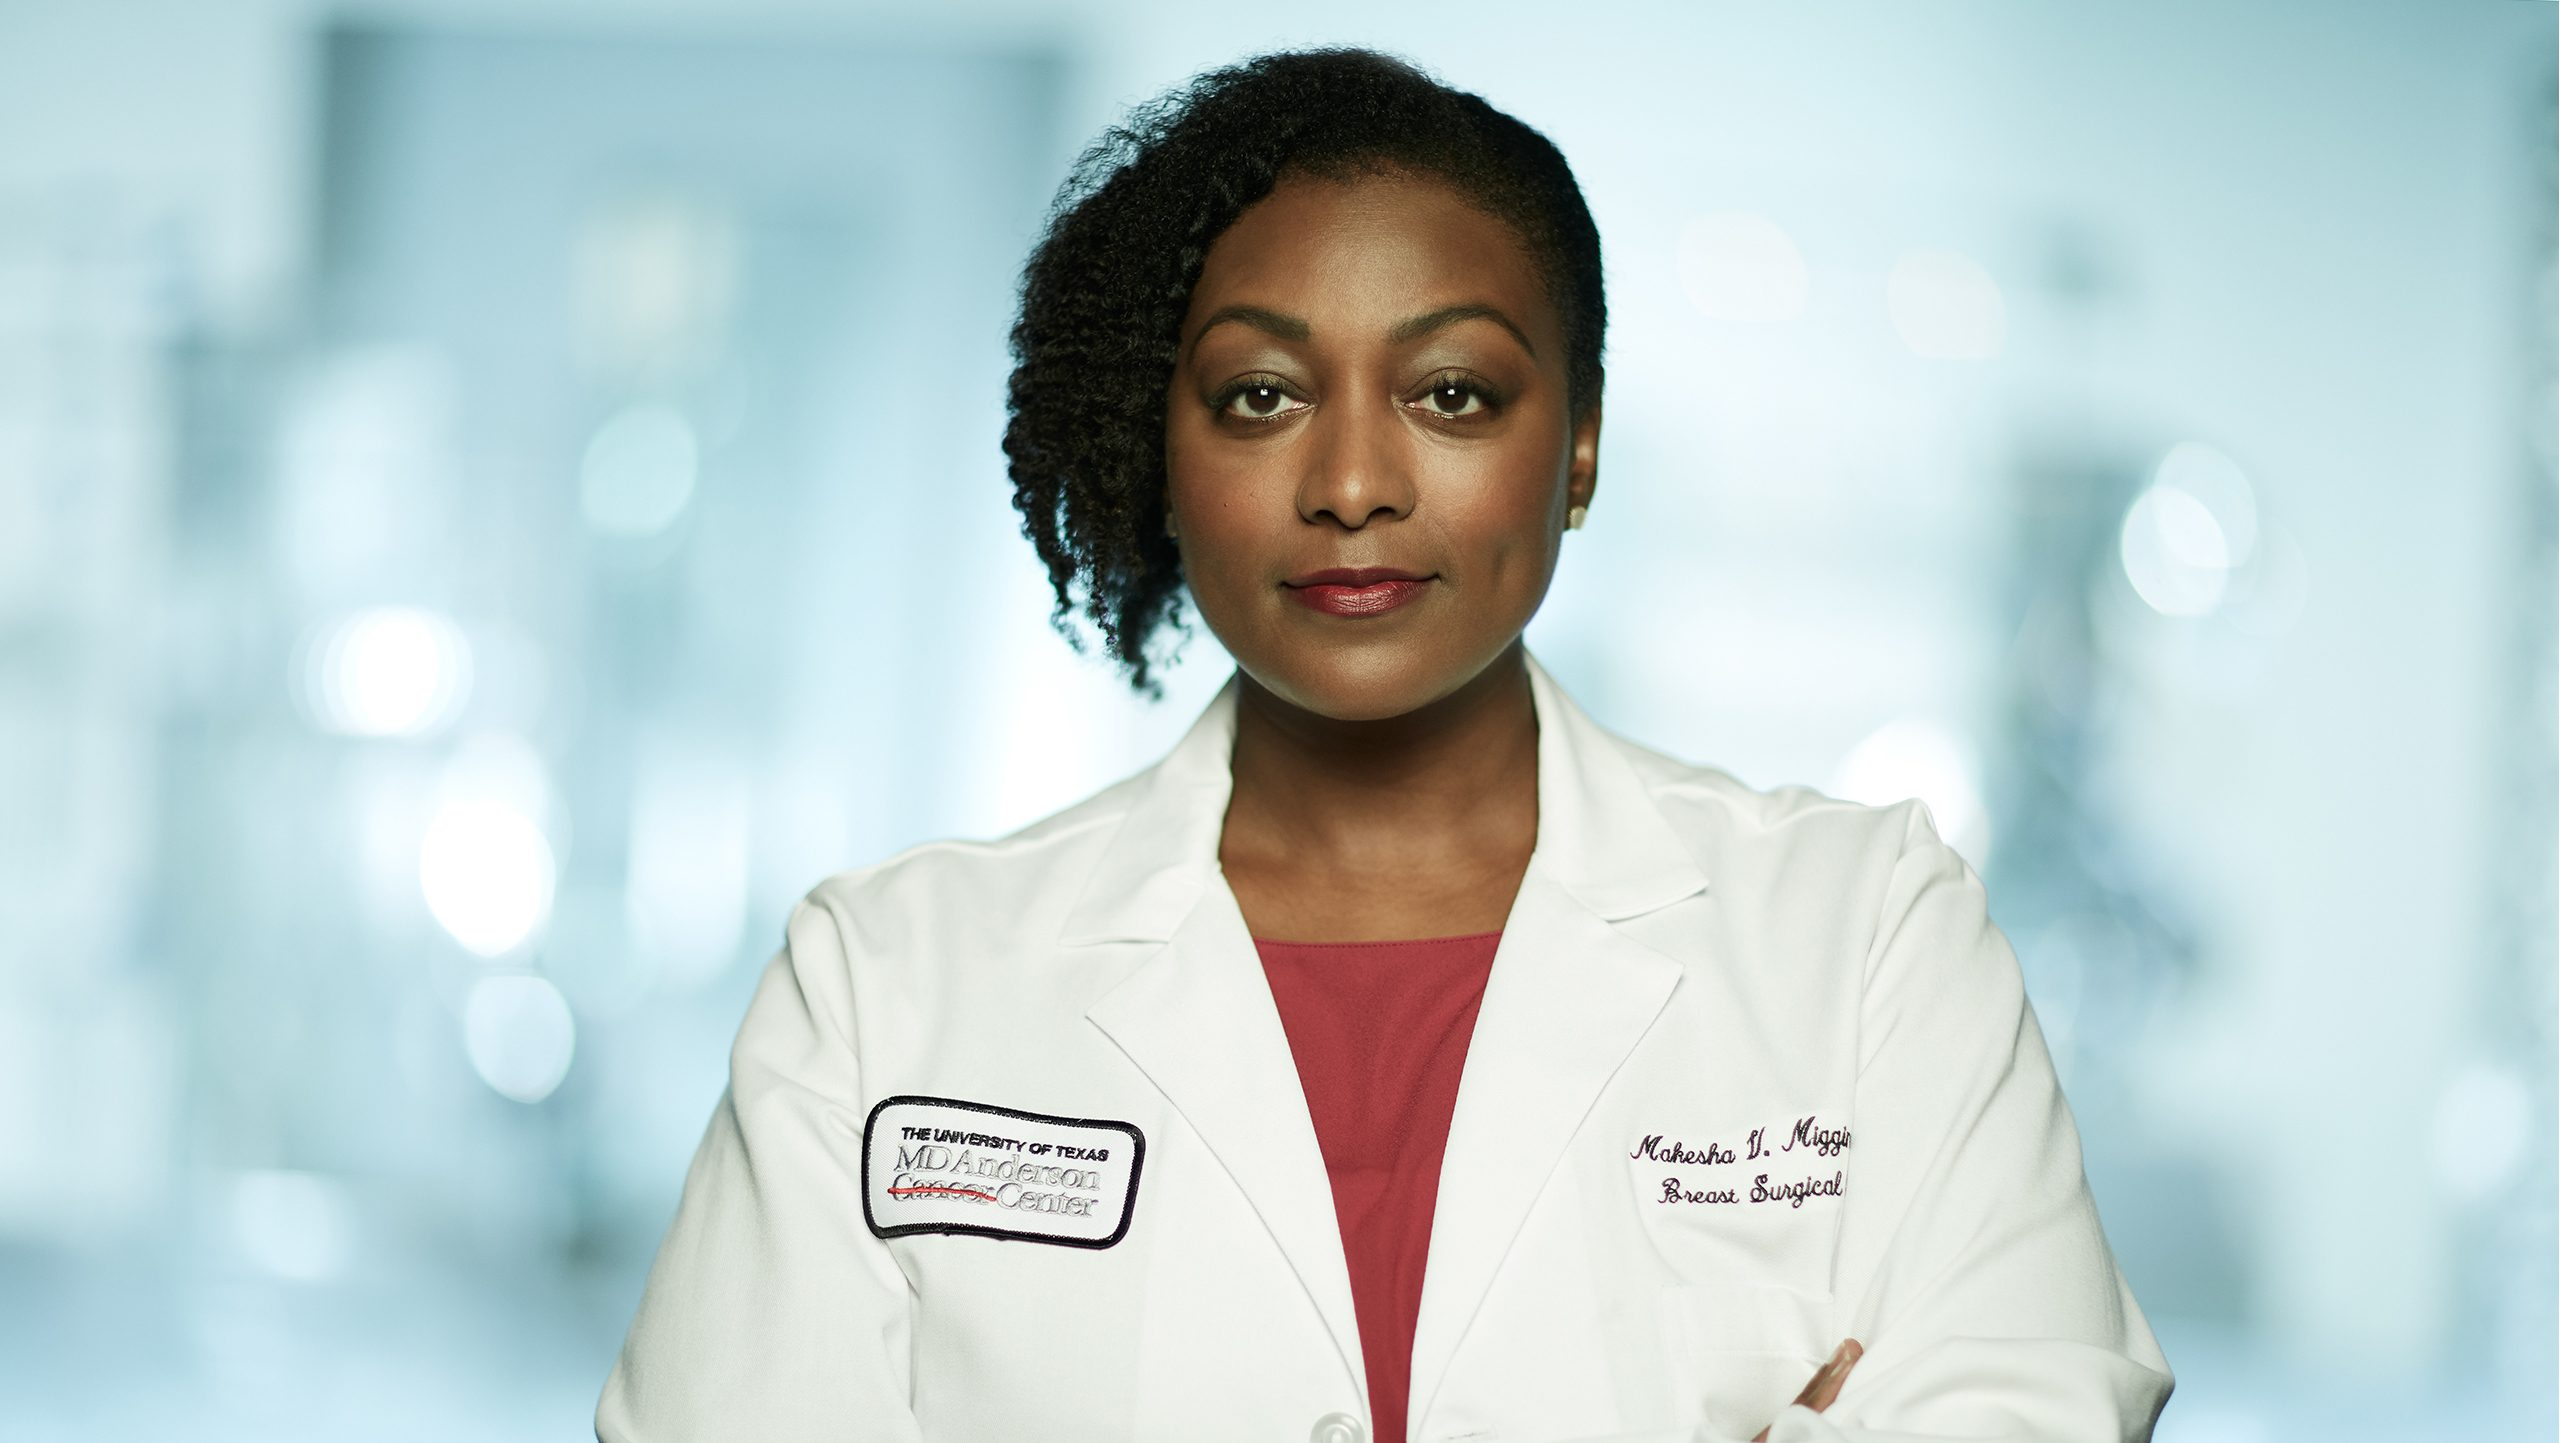 Makesha Miggins, M.D.